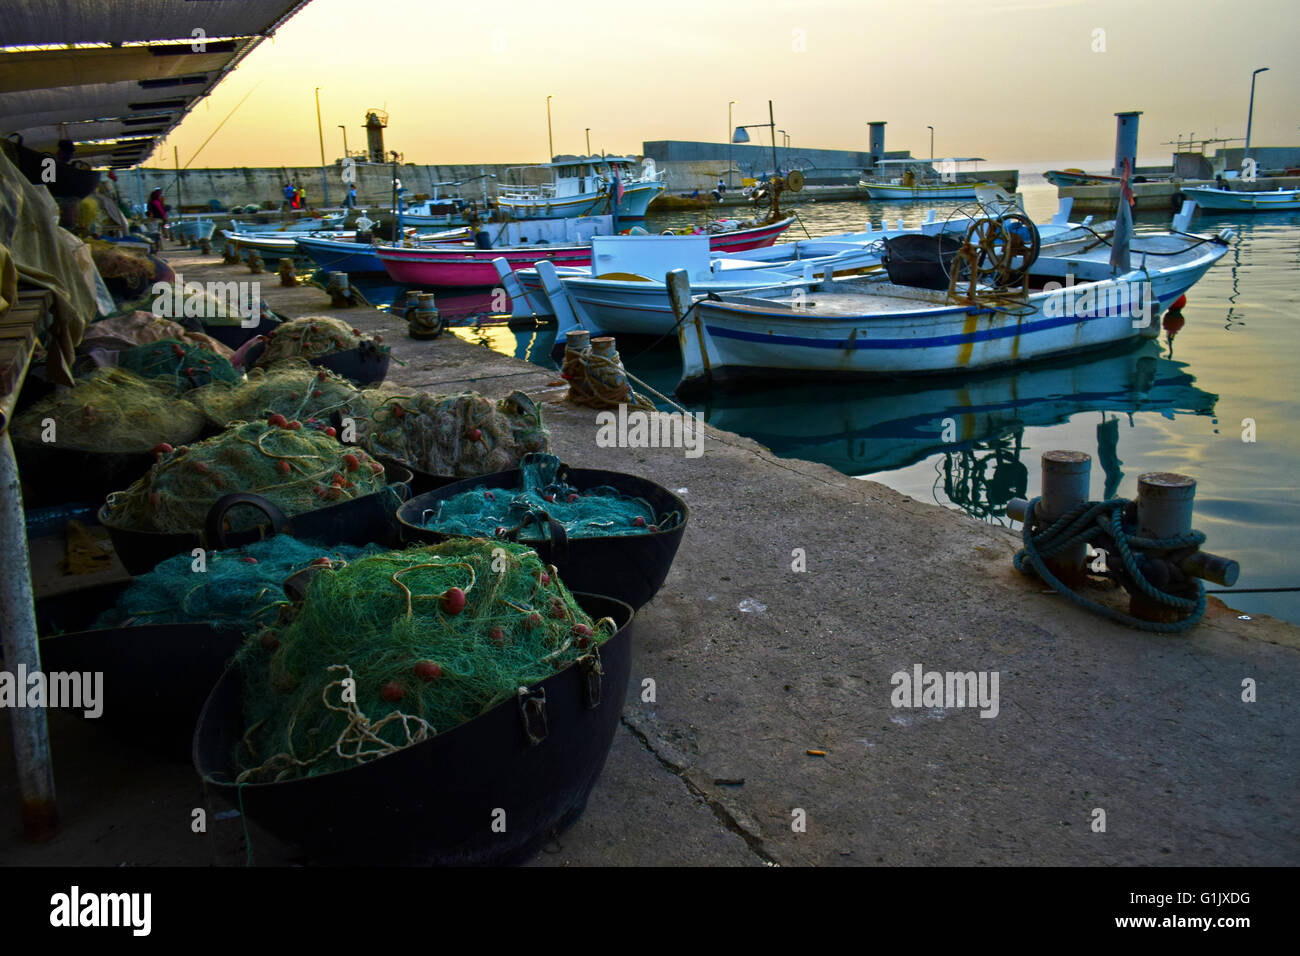 the old nets of the fisherman, the ships and a calm peaceful sunset. - Stock Image